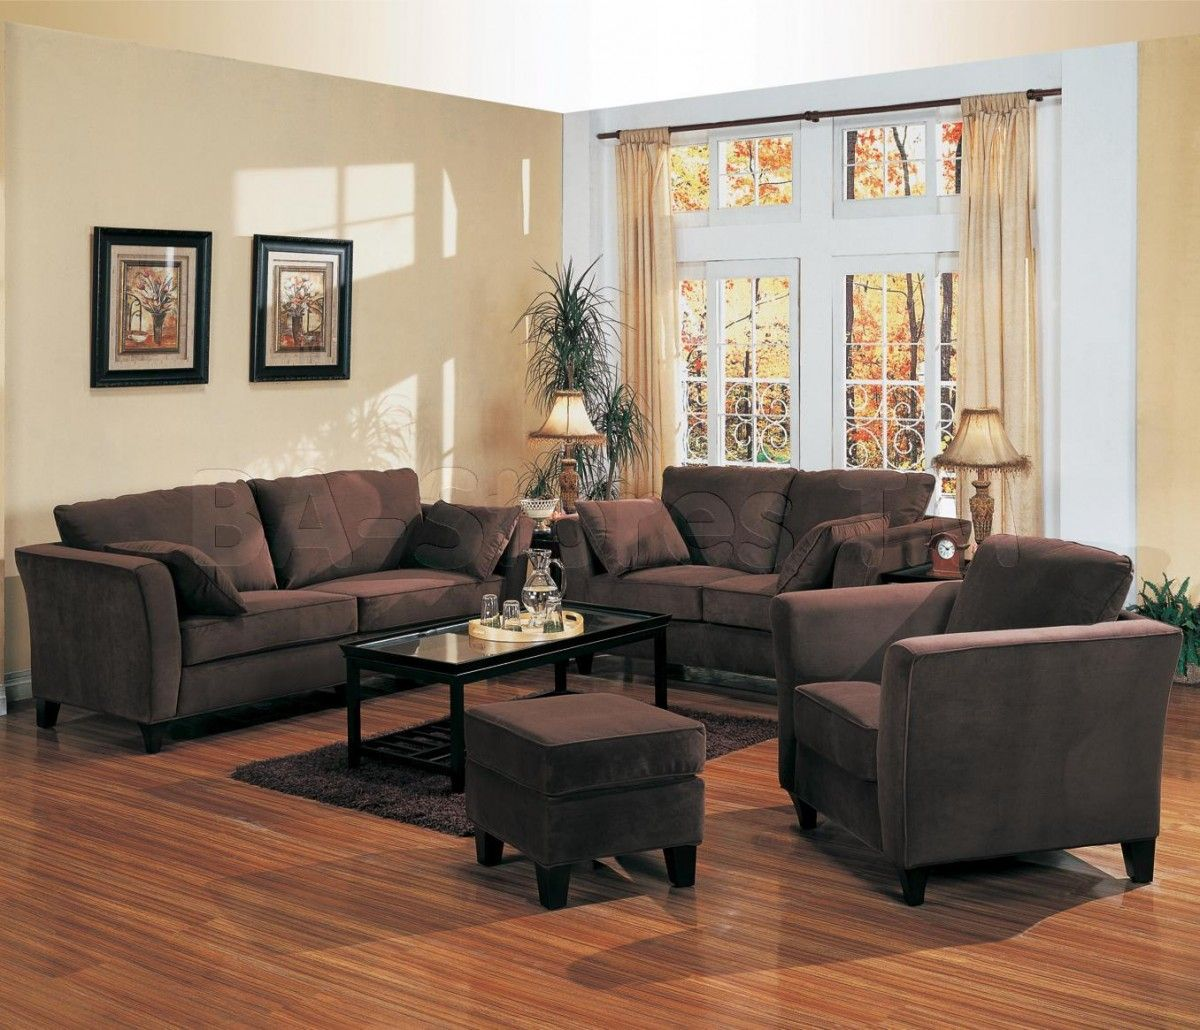 What Color Curtains With Blue Walls Brown Furniture Wall Colour With Brown Furniture Wall Colors That Go With